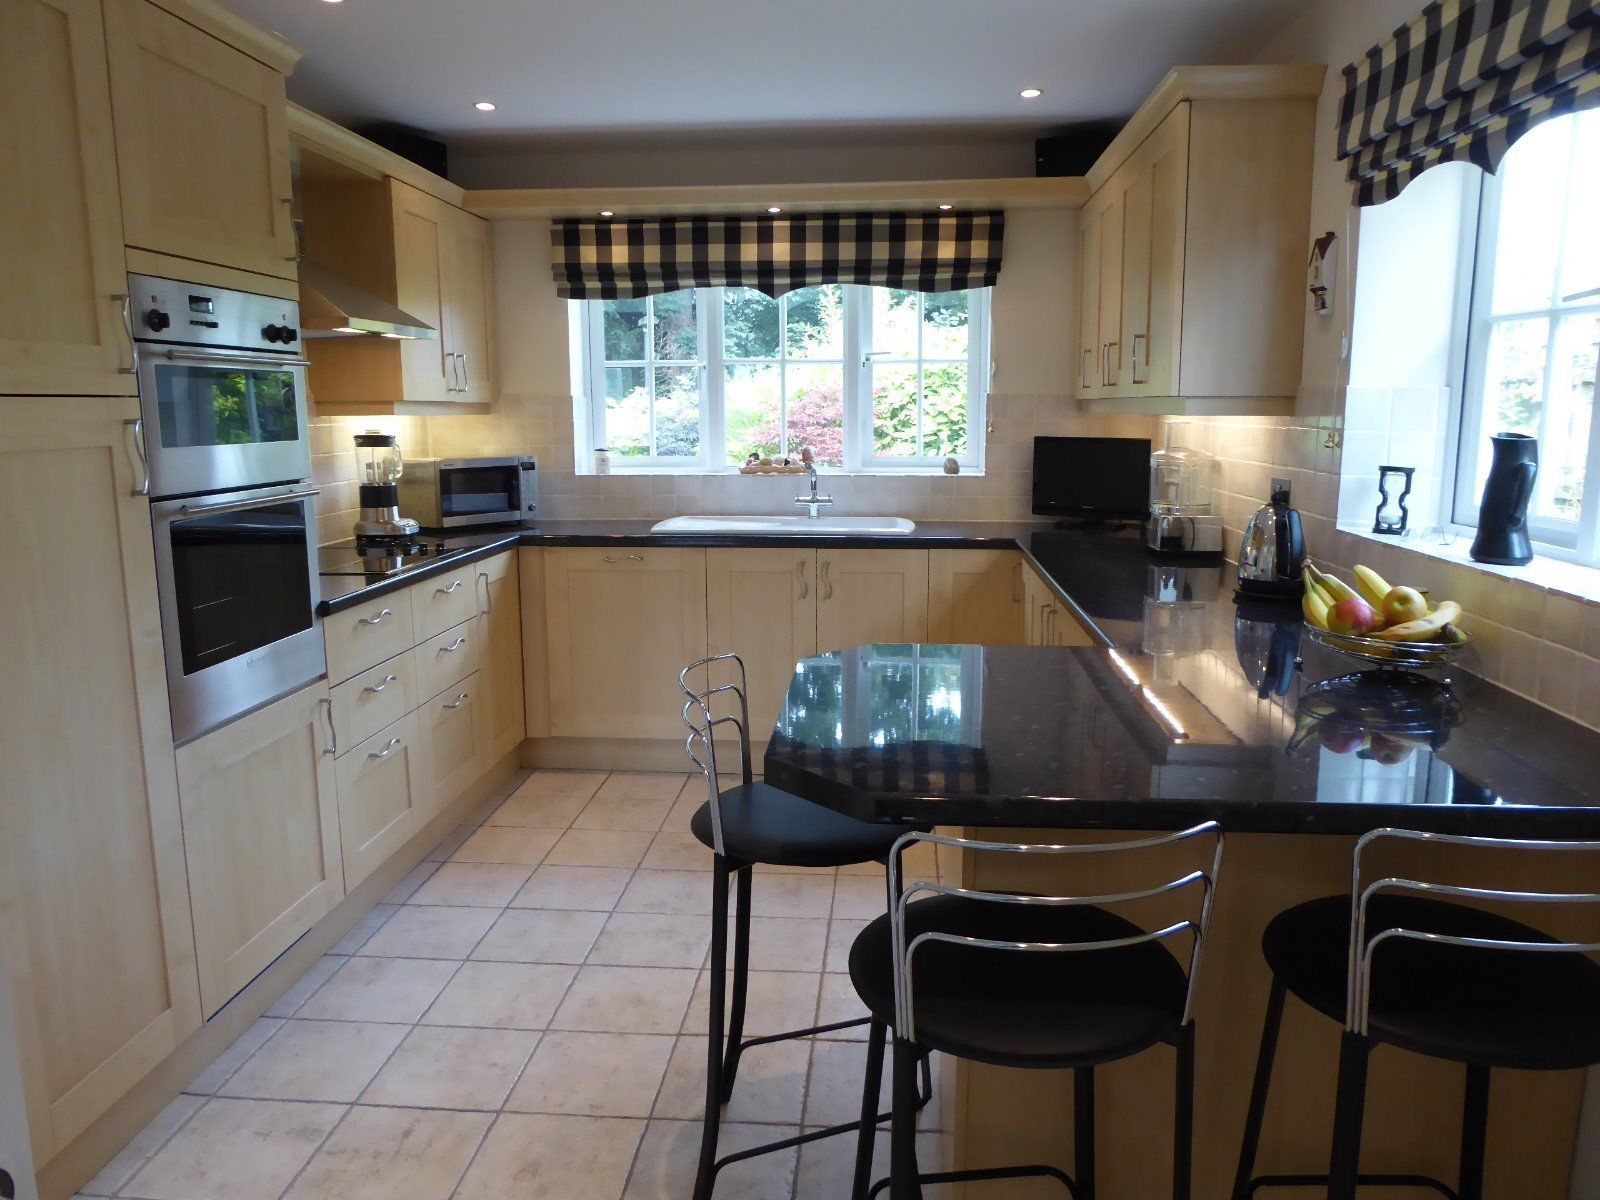 Uncategorized Ebay Appliances Kitchen complete fitted kitchen in maple with neff appliances and franke sinks ebay